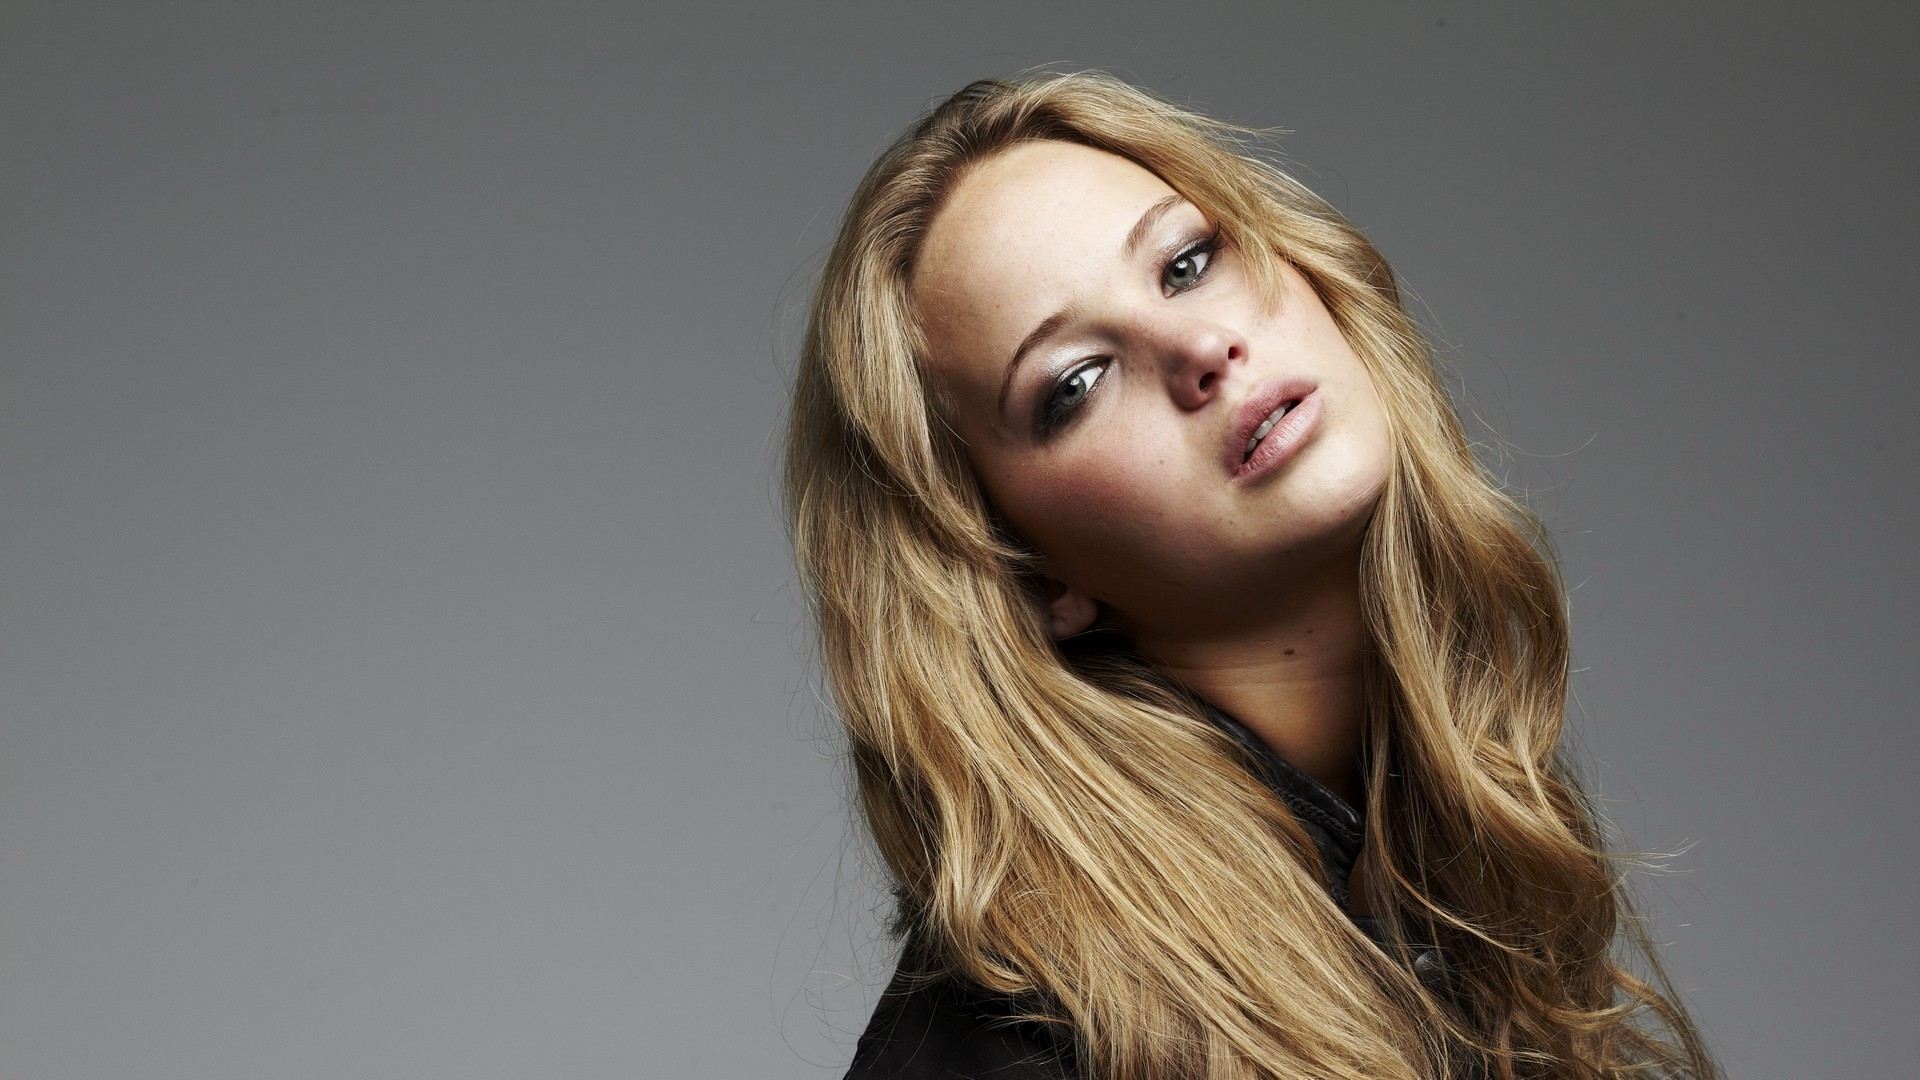 jennifer lawrence desktop wallpaper background